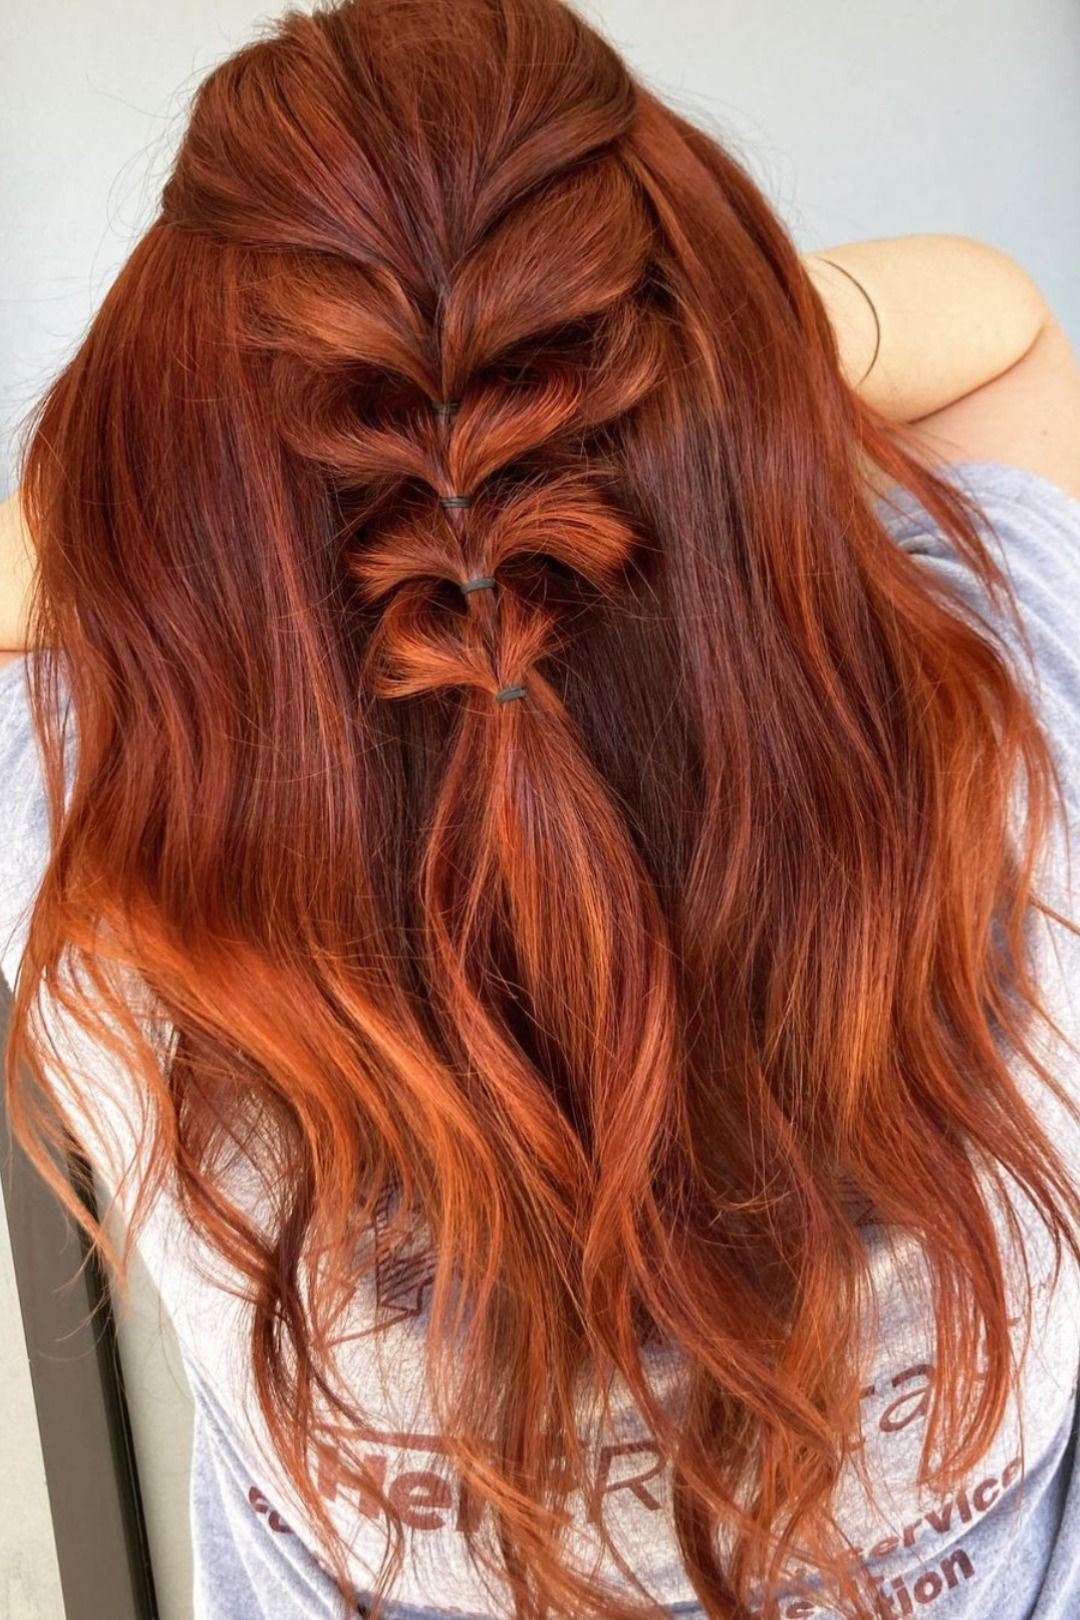 Red Hair Care Hairstyles And Styling For Redheads In 2020 Hair Styles Red Hair Red To Blonde